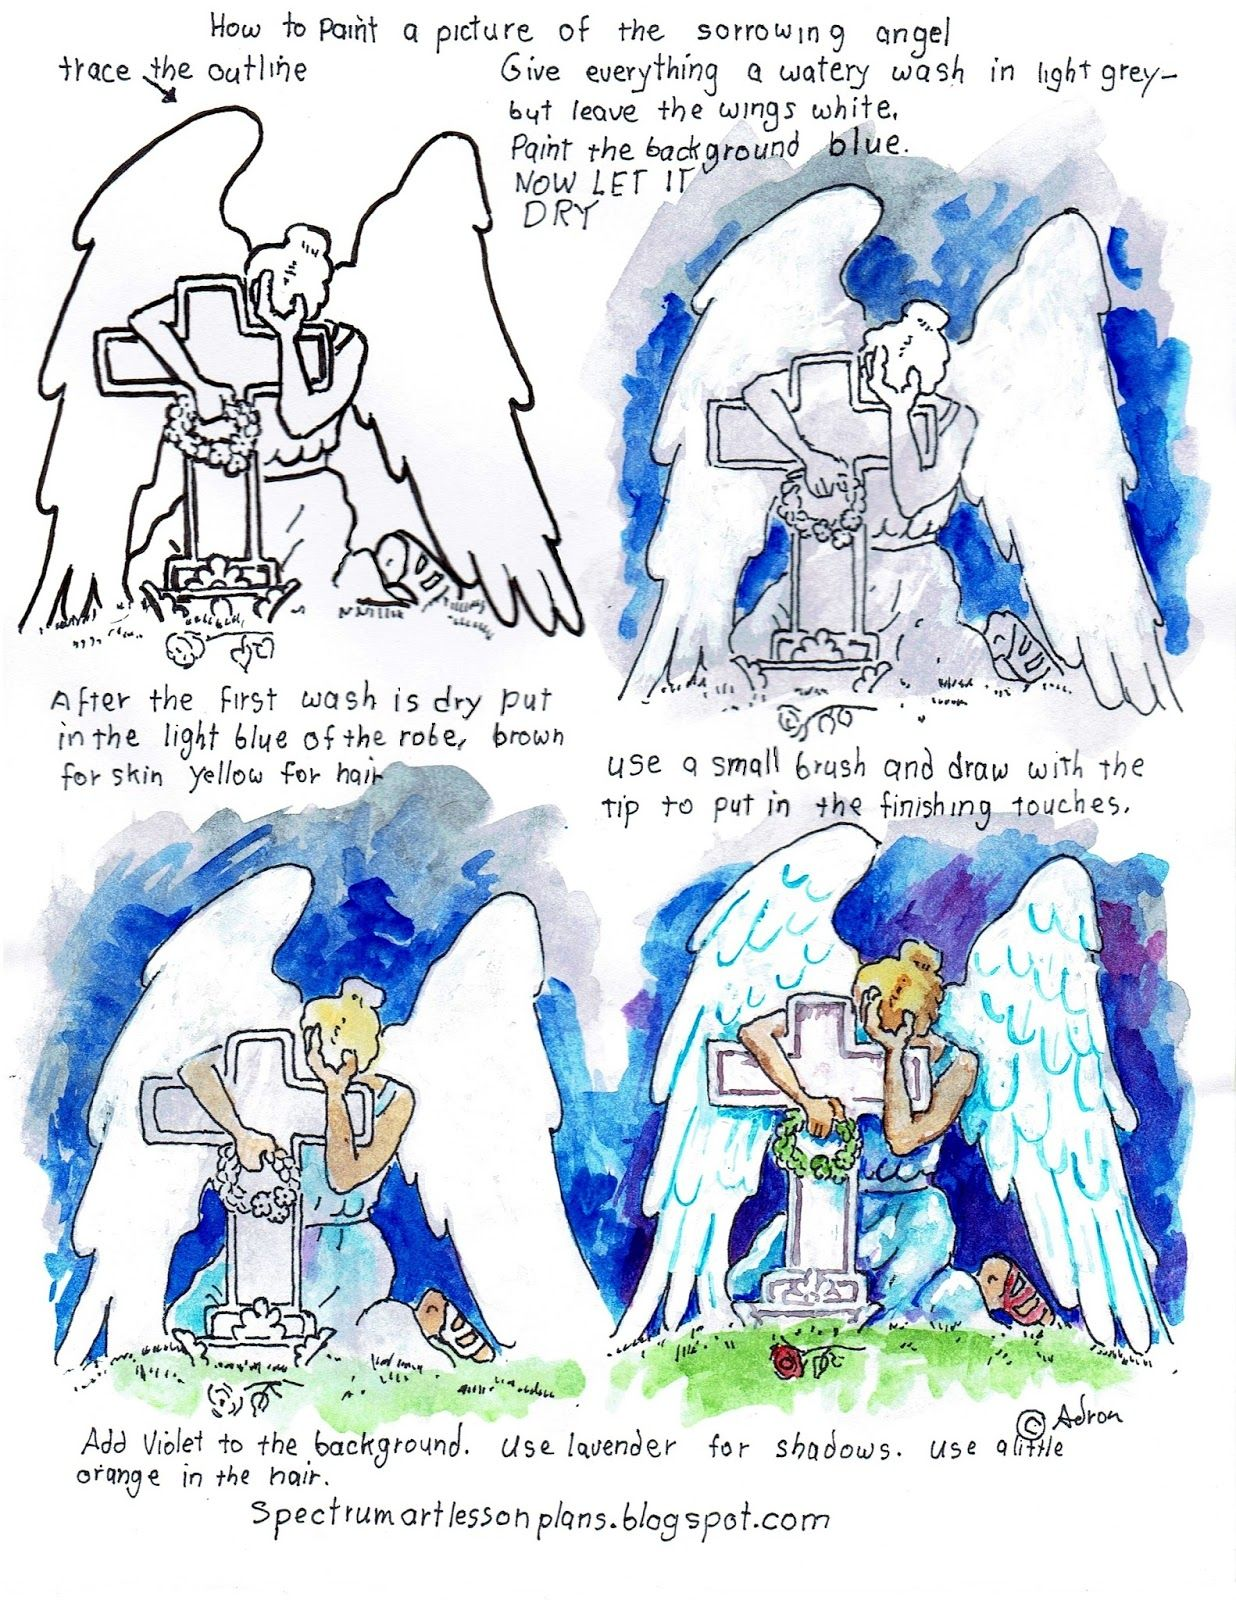 How To Paint A Picture Of The Sorrowing Angel